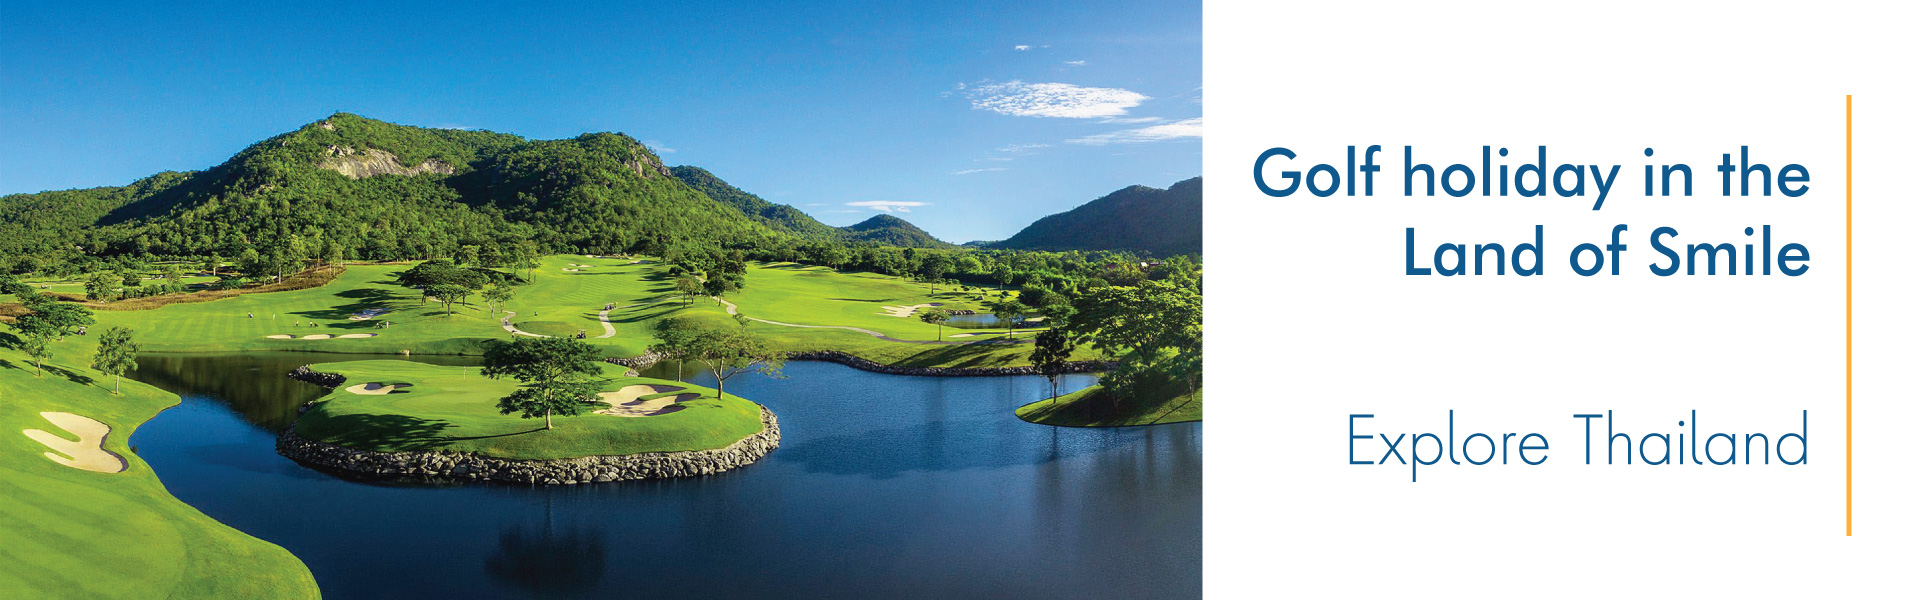 Explore Thailand: Golf holiday in the Land of Smile